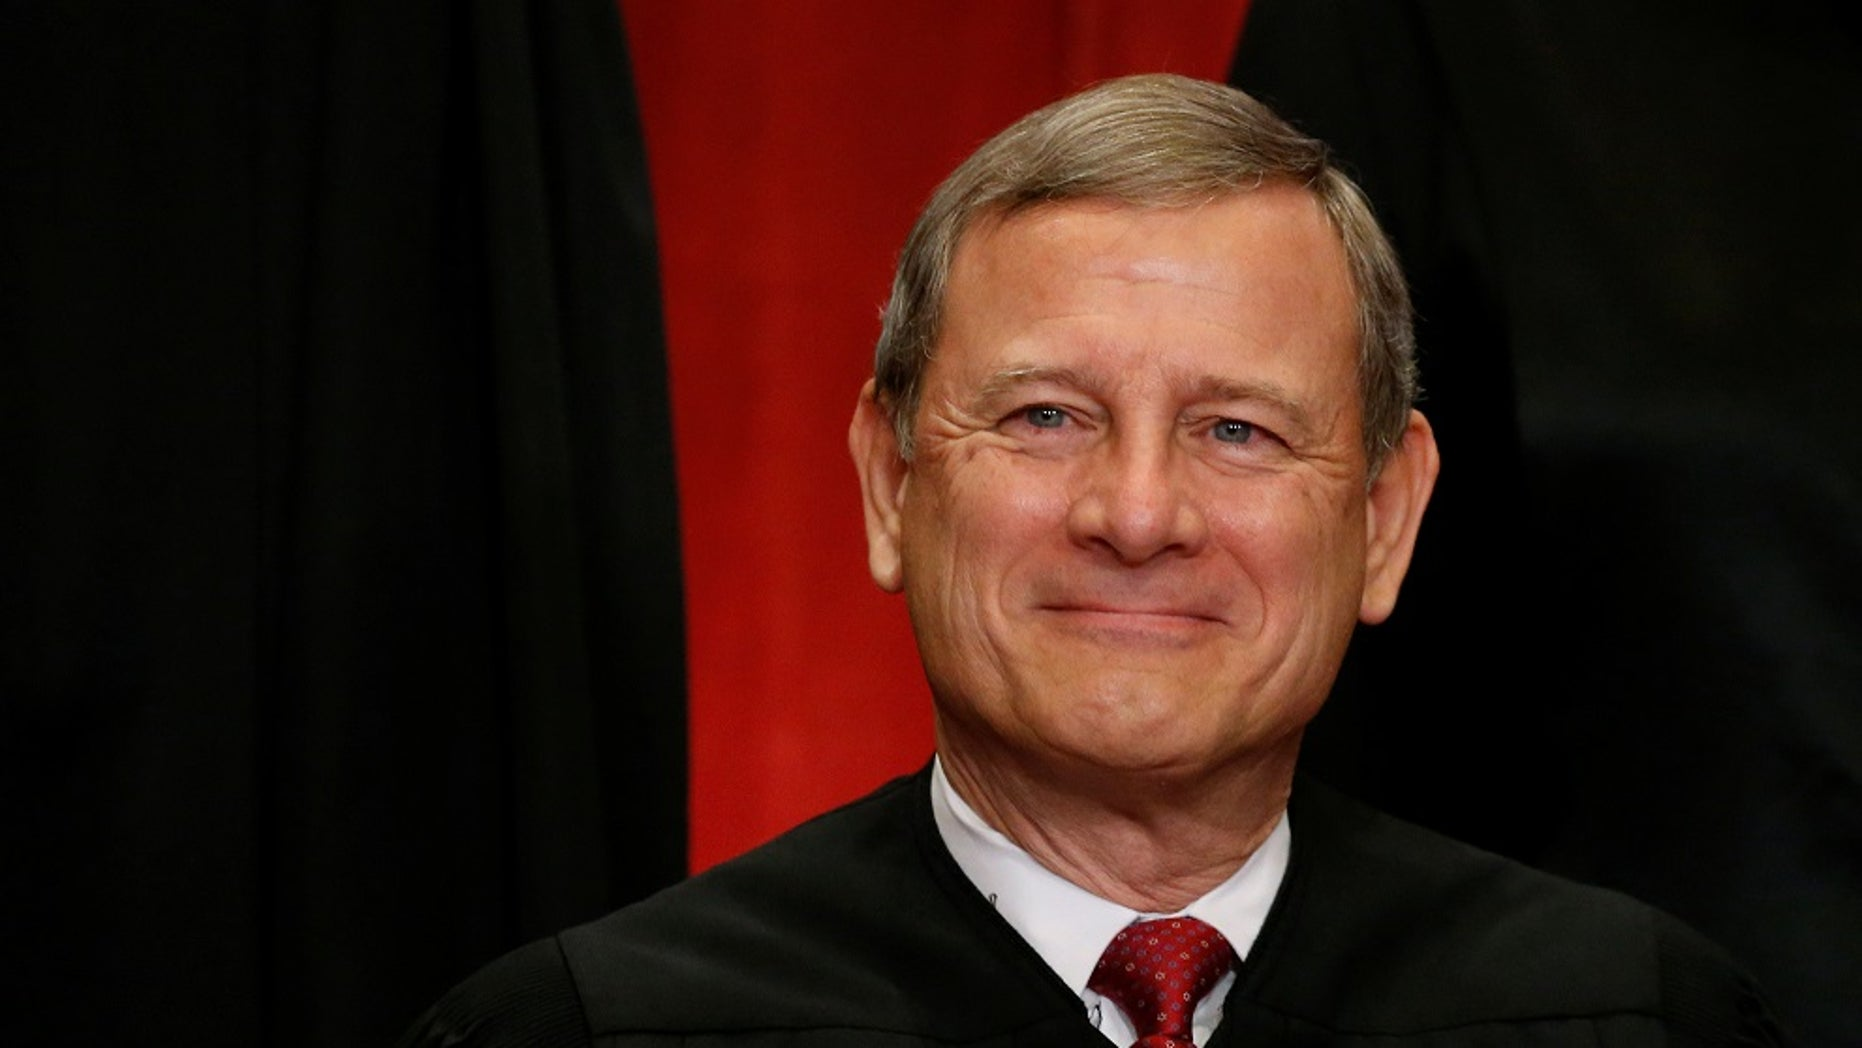 U.S. Supreme Court Chief Justice John Roberts is seen in the Supreme Court building in Washington, June 1, 2017.